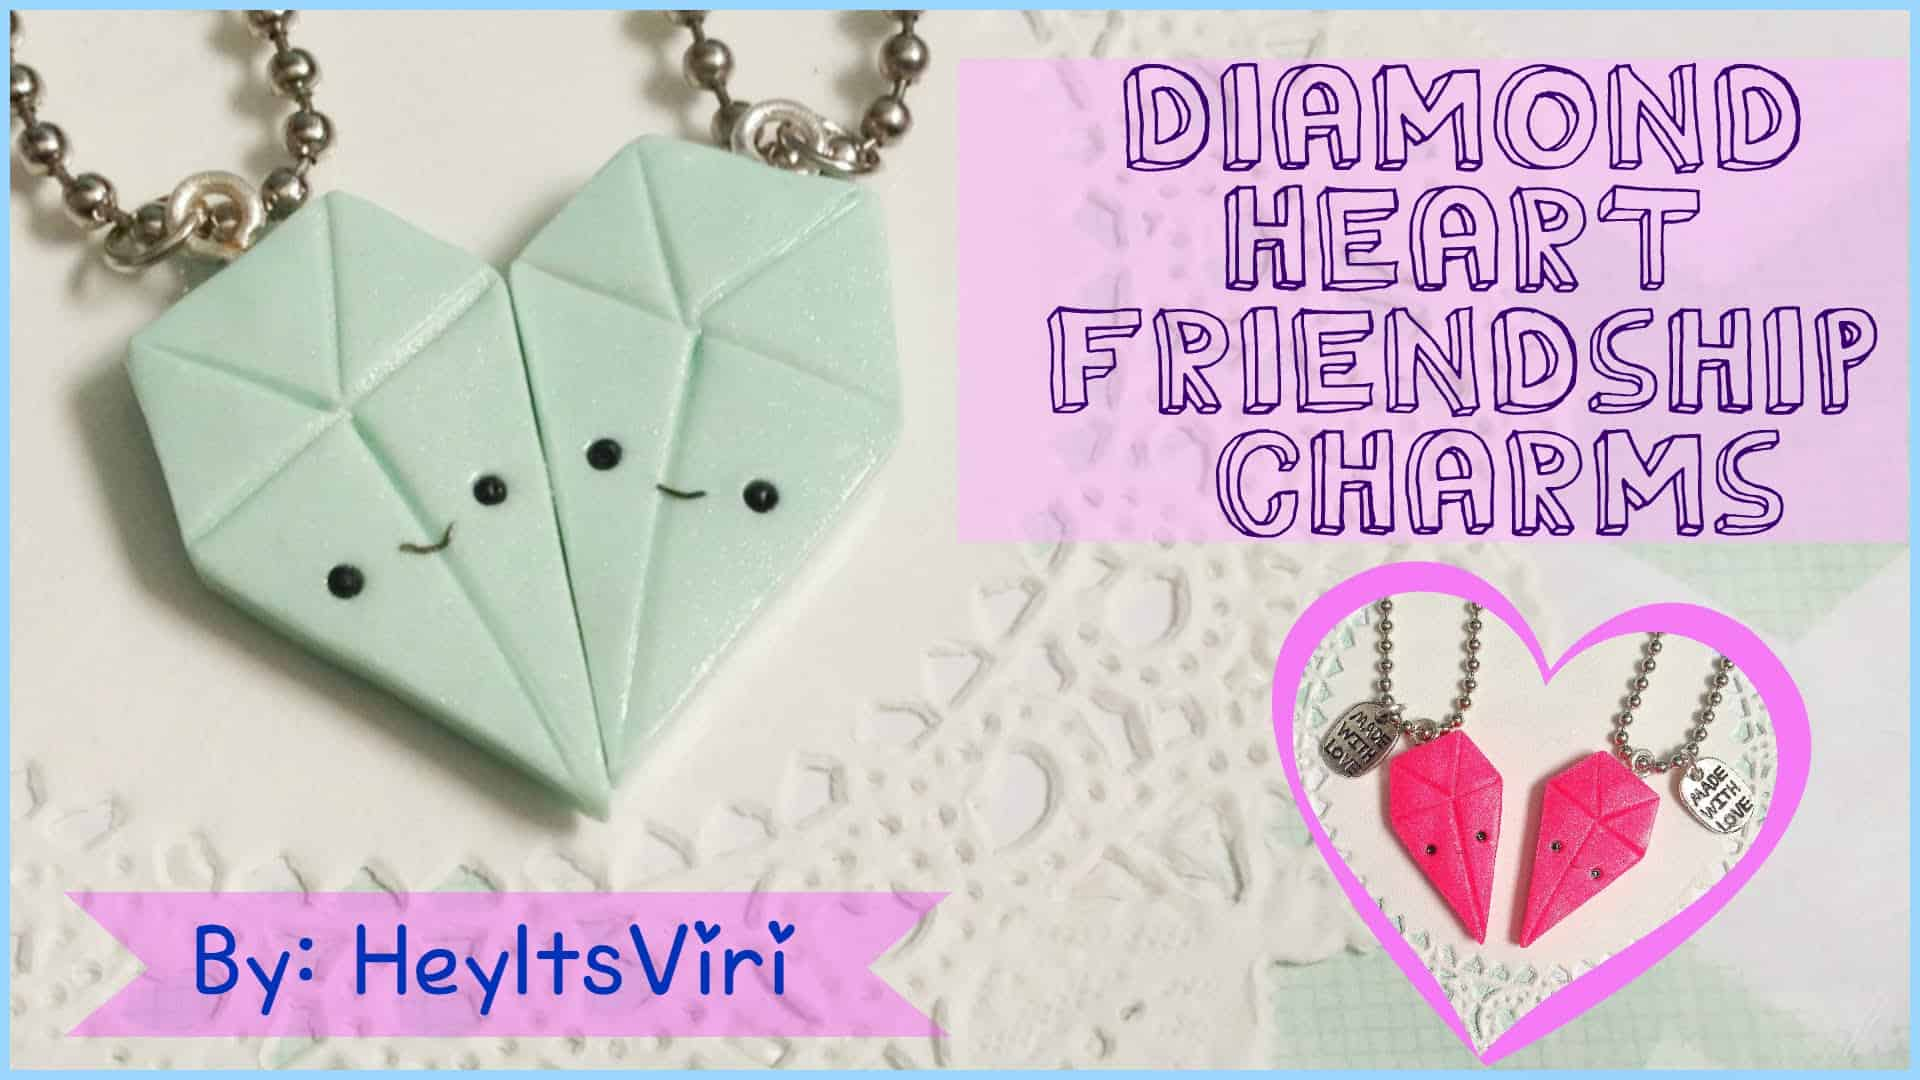 Diamond heart friendship necklace